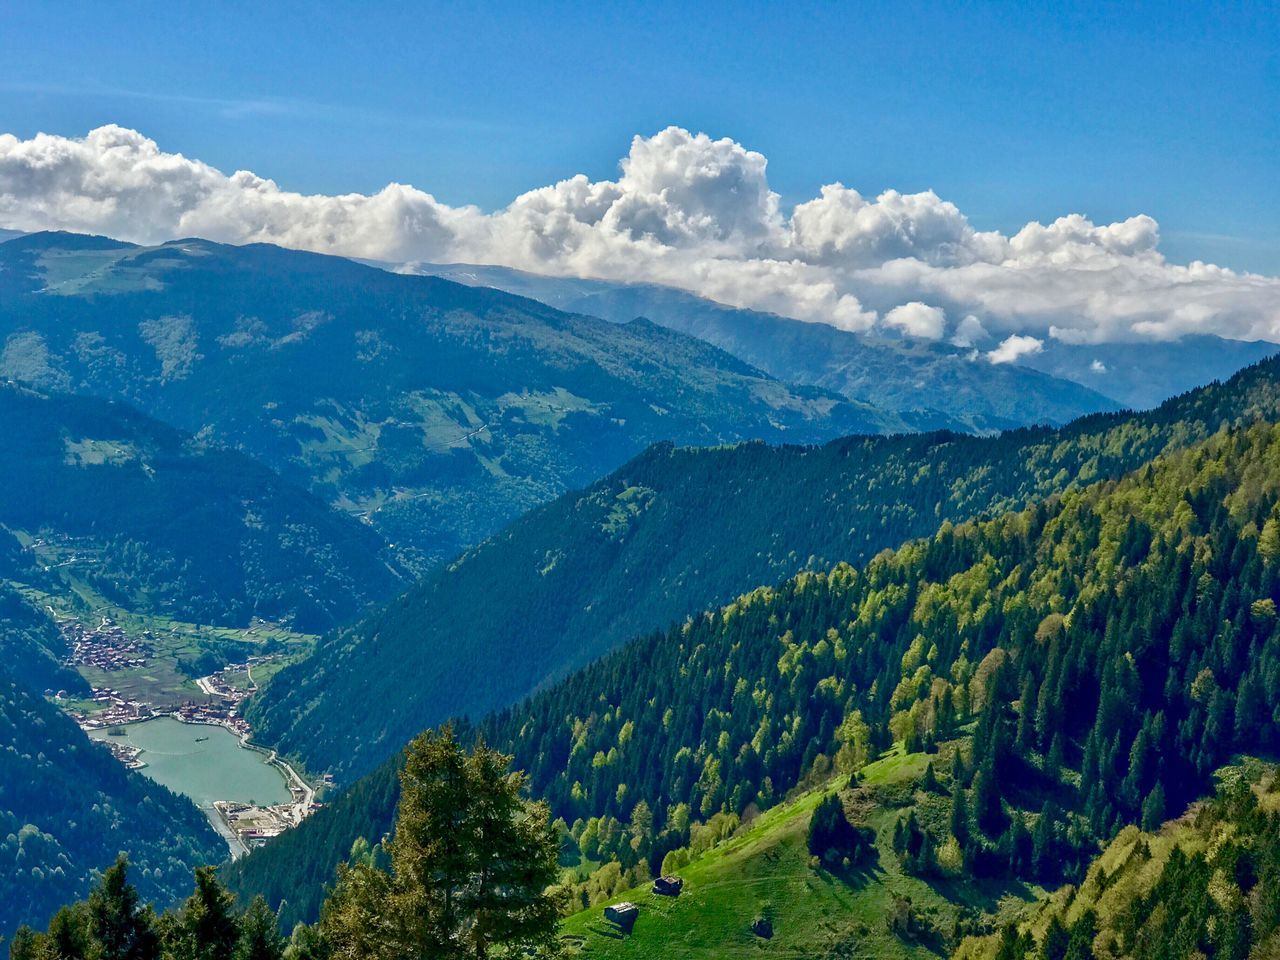 Mountain Scenics Nature Beauty In Nature Sky Landscape Mountain Range Green Color Tranquil Scene Pine Tree Forest No People Day Growth Outdoors Blue Tree Trabzon Uzungol Turkey Women Water Sunlight Tranquility Travel Destinations Lake Cloud - Sky